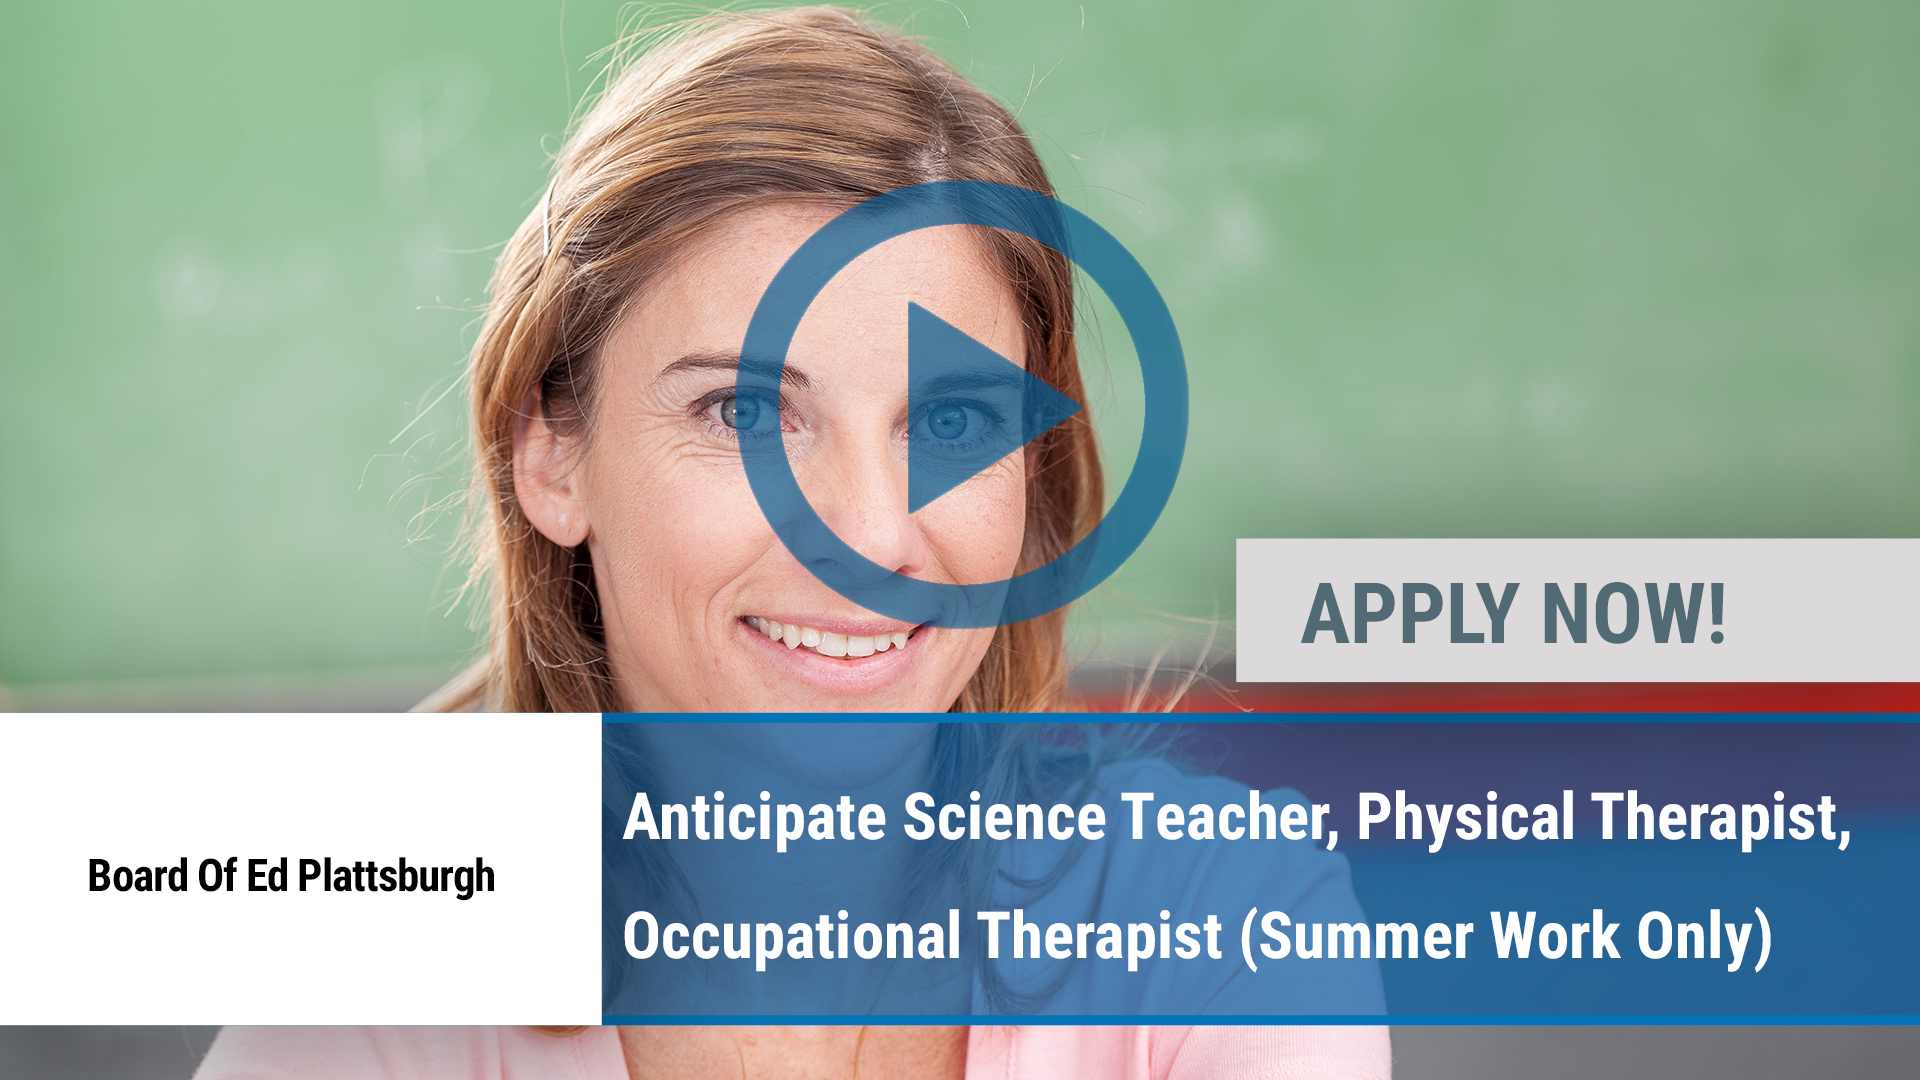 Watch our careers video for available job opening Anticipate Science Teacher, Physical Therapist, O in Plattsburgh, NY